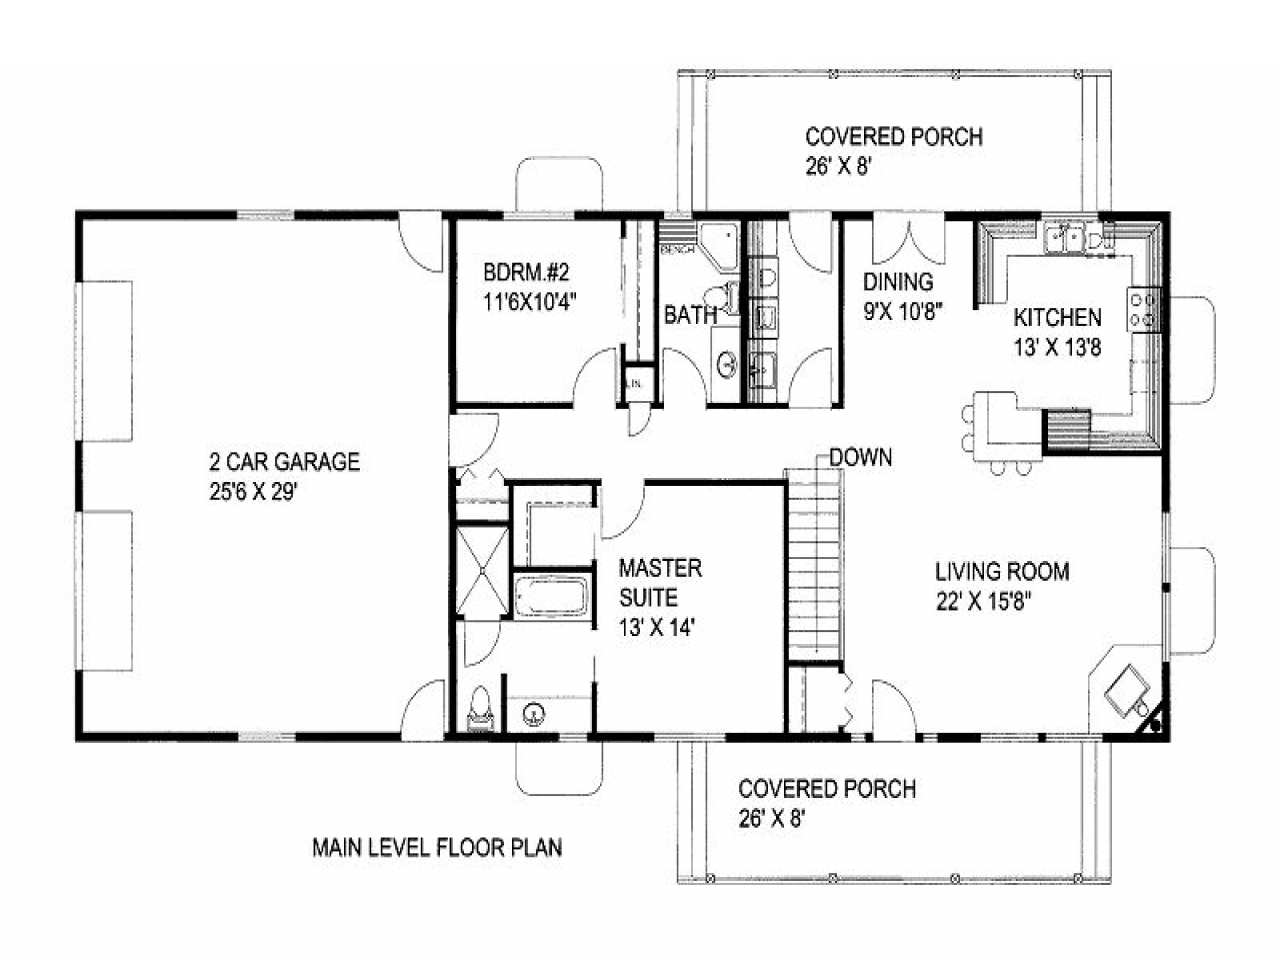 1500 Square Foot House Plans 2 Bedroom 1500 Sq Ft Homes In Dc 1500 Square Foot Bungalow House